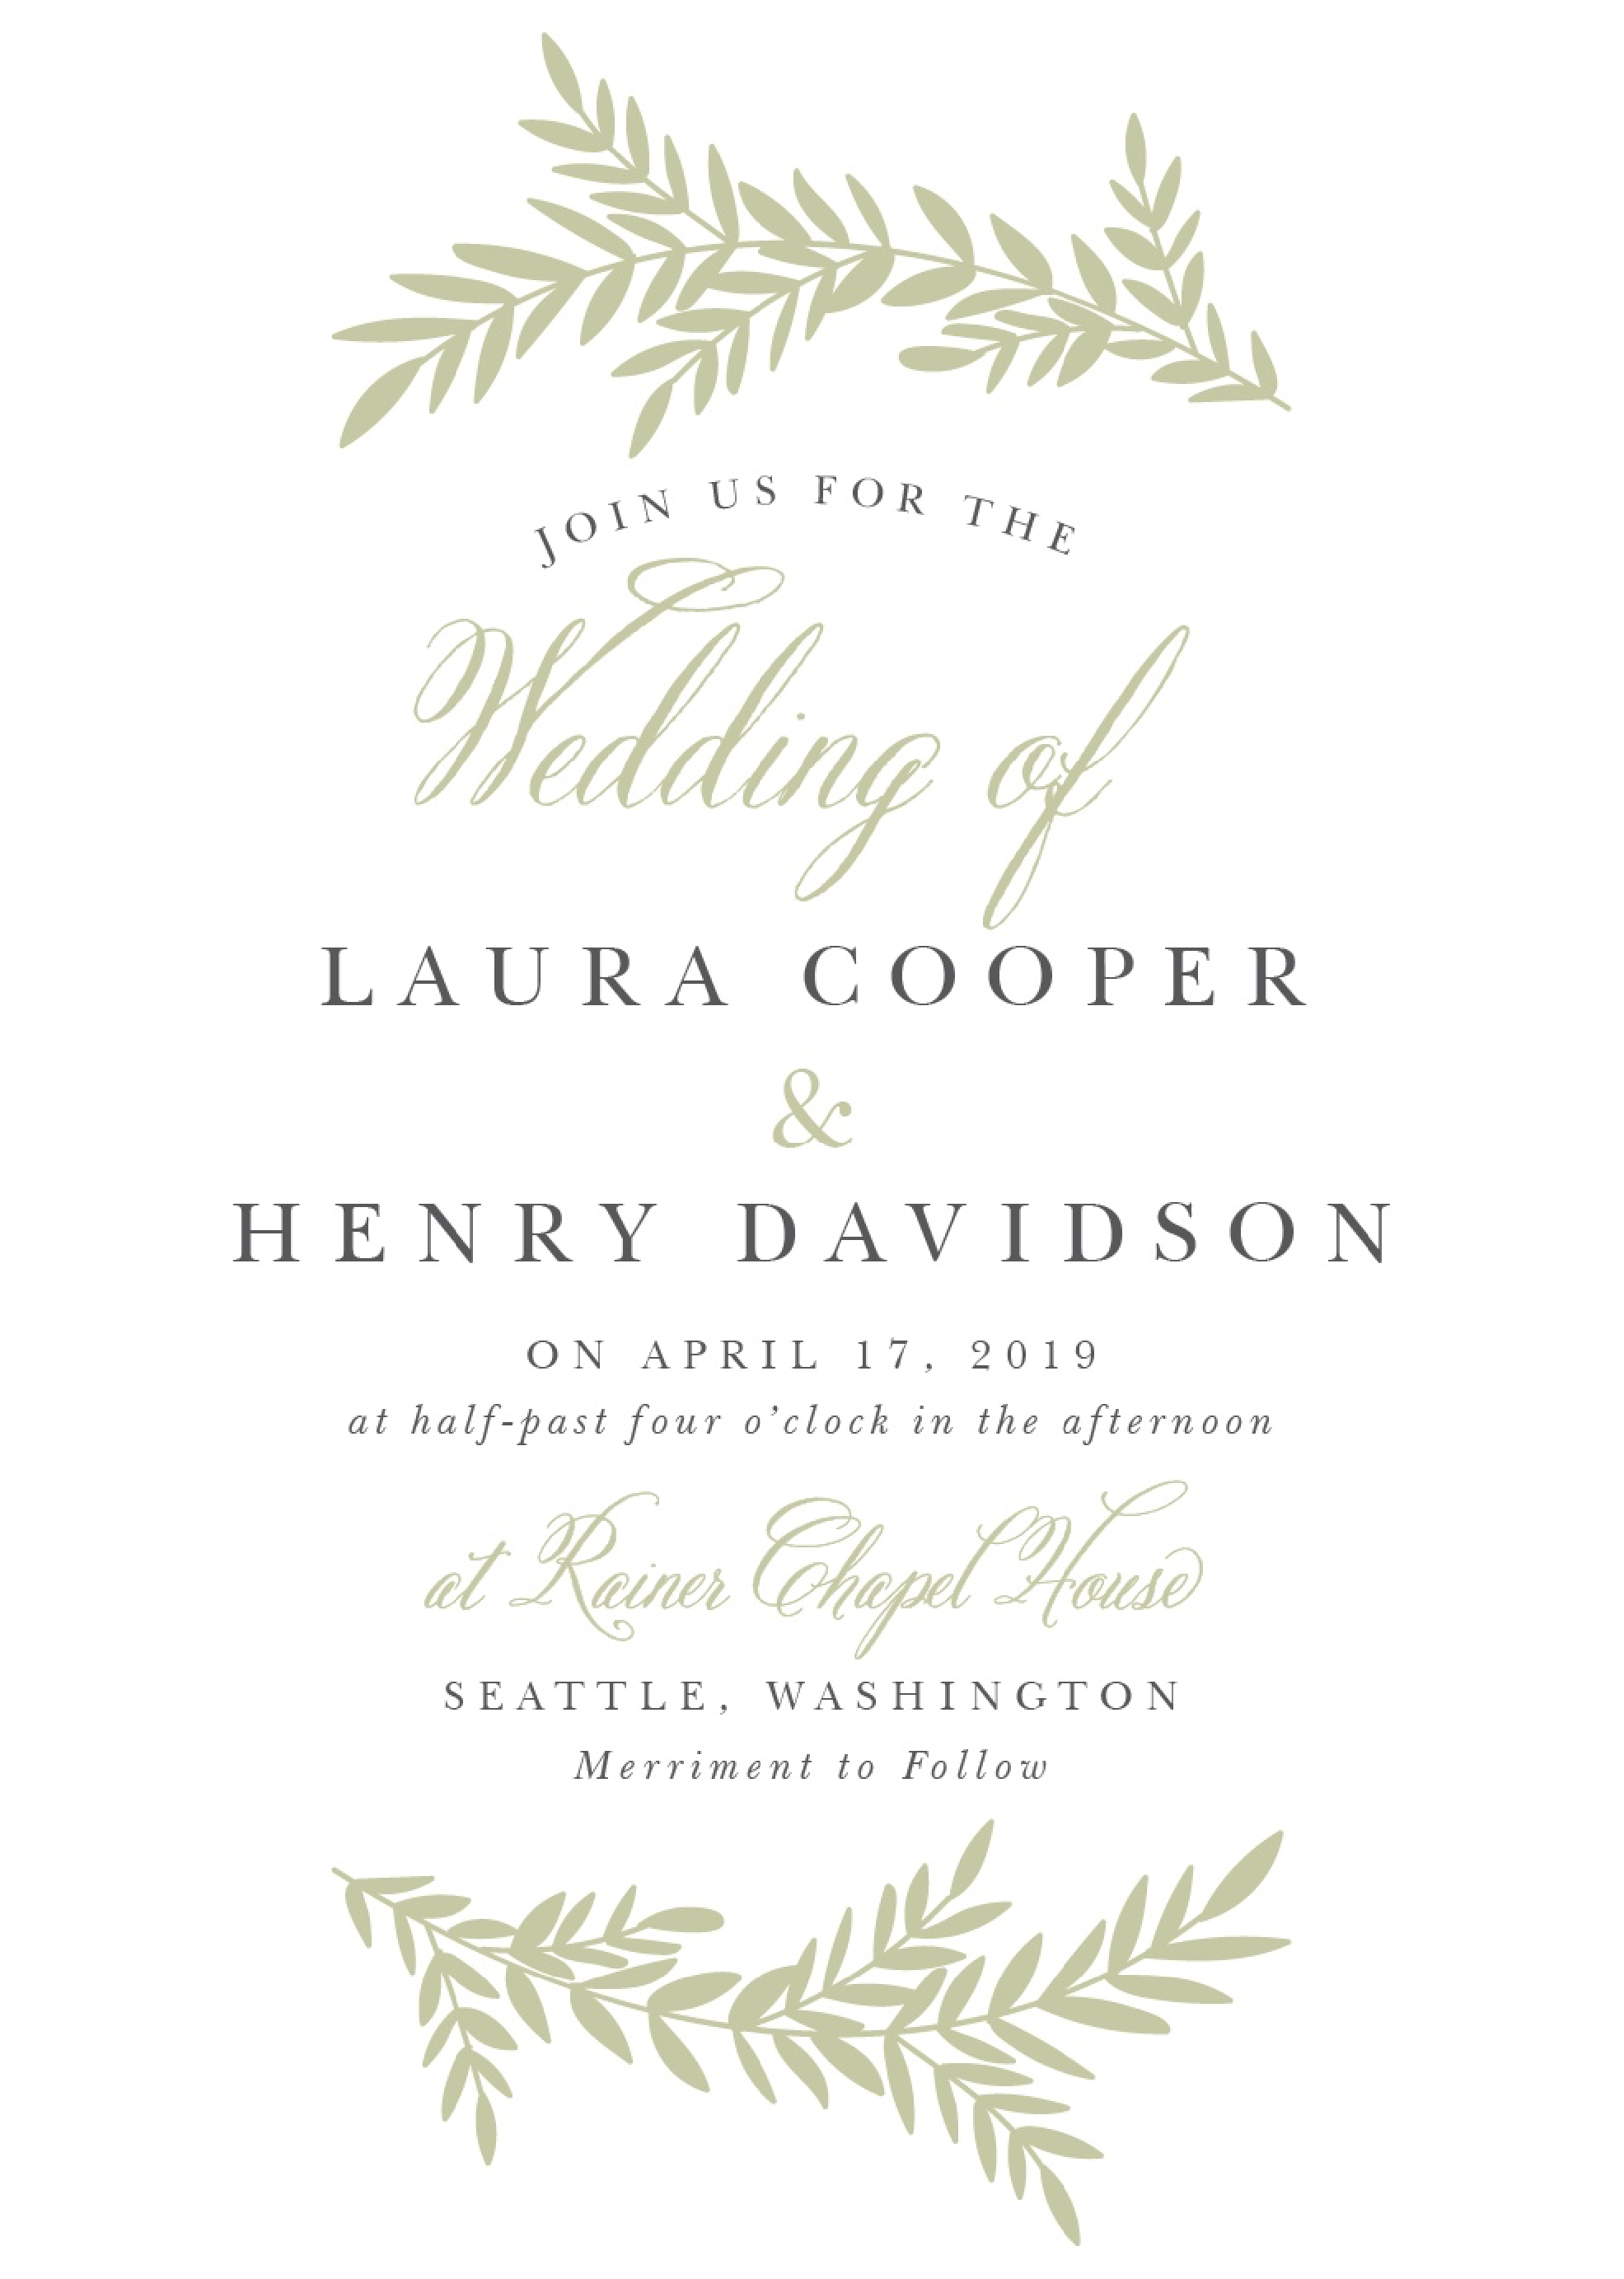 Wedding Invitation Wording Etiquette.Wedding Invitation Wording Samples